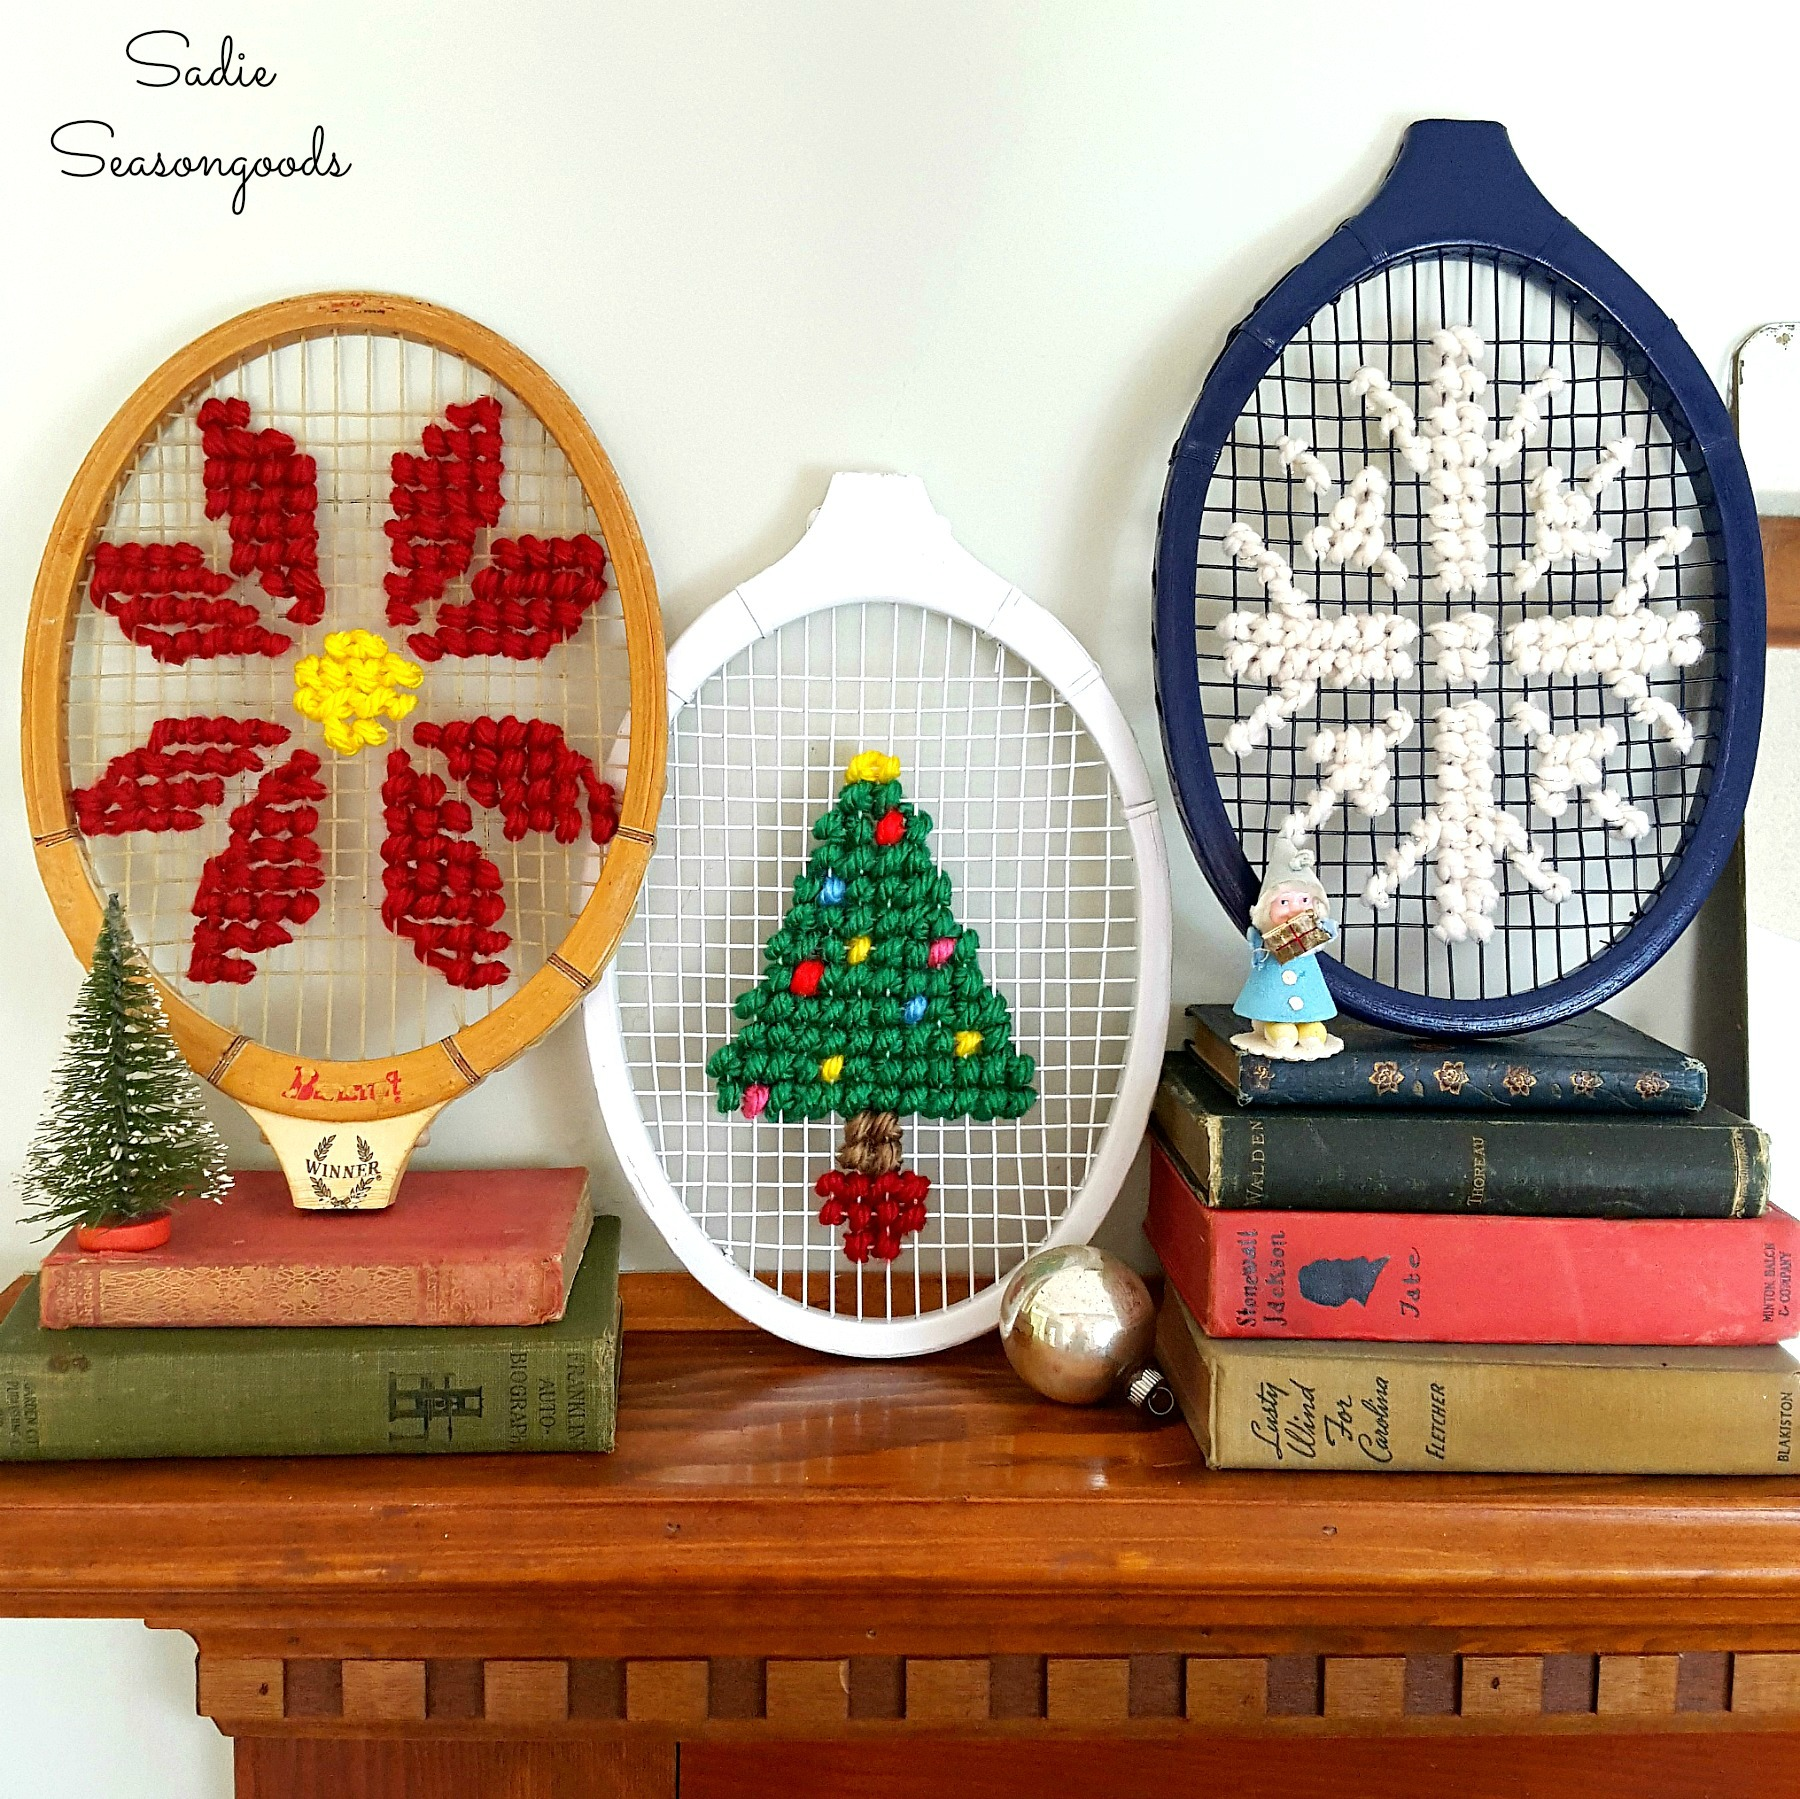 waste-not-wednesday-week-28-oversized_christmas_cross_stitch_on_vintage_wooden_tennis_racket_racquet_by_sadie_seasongoods